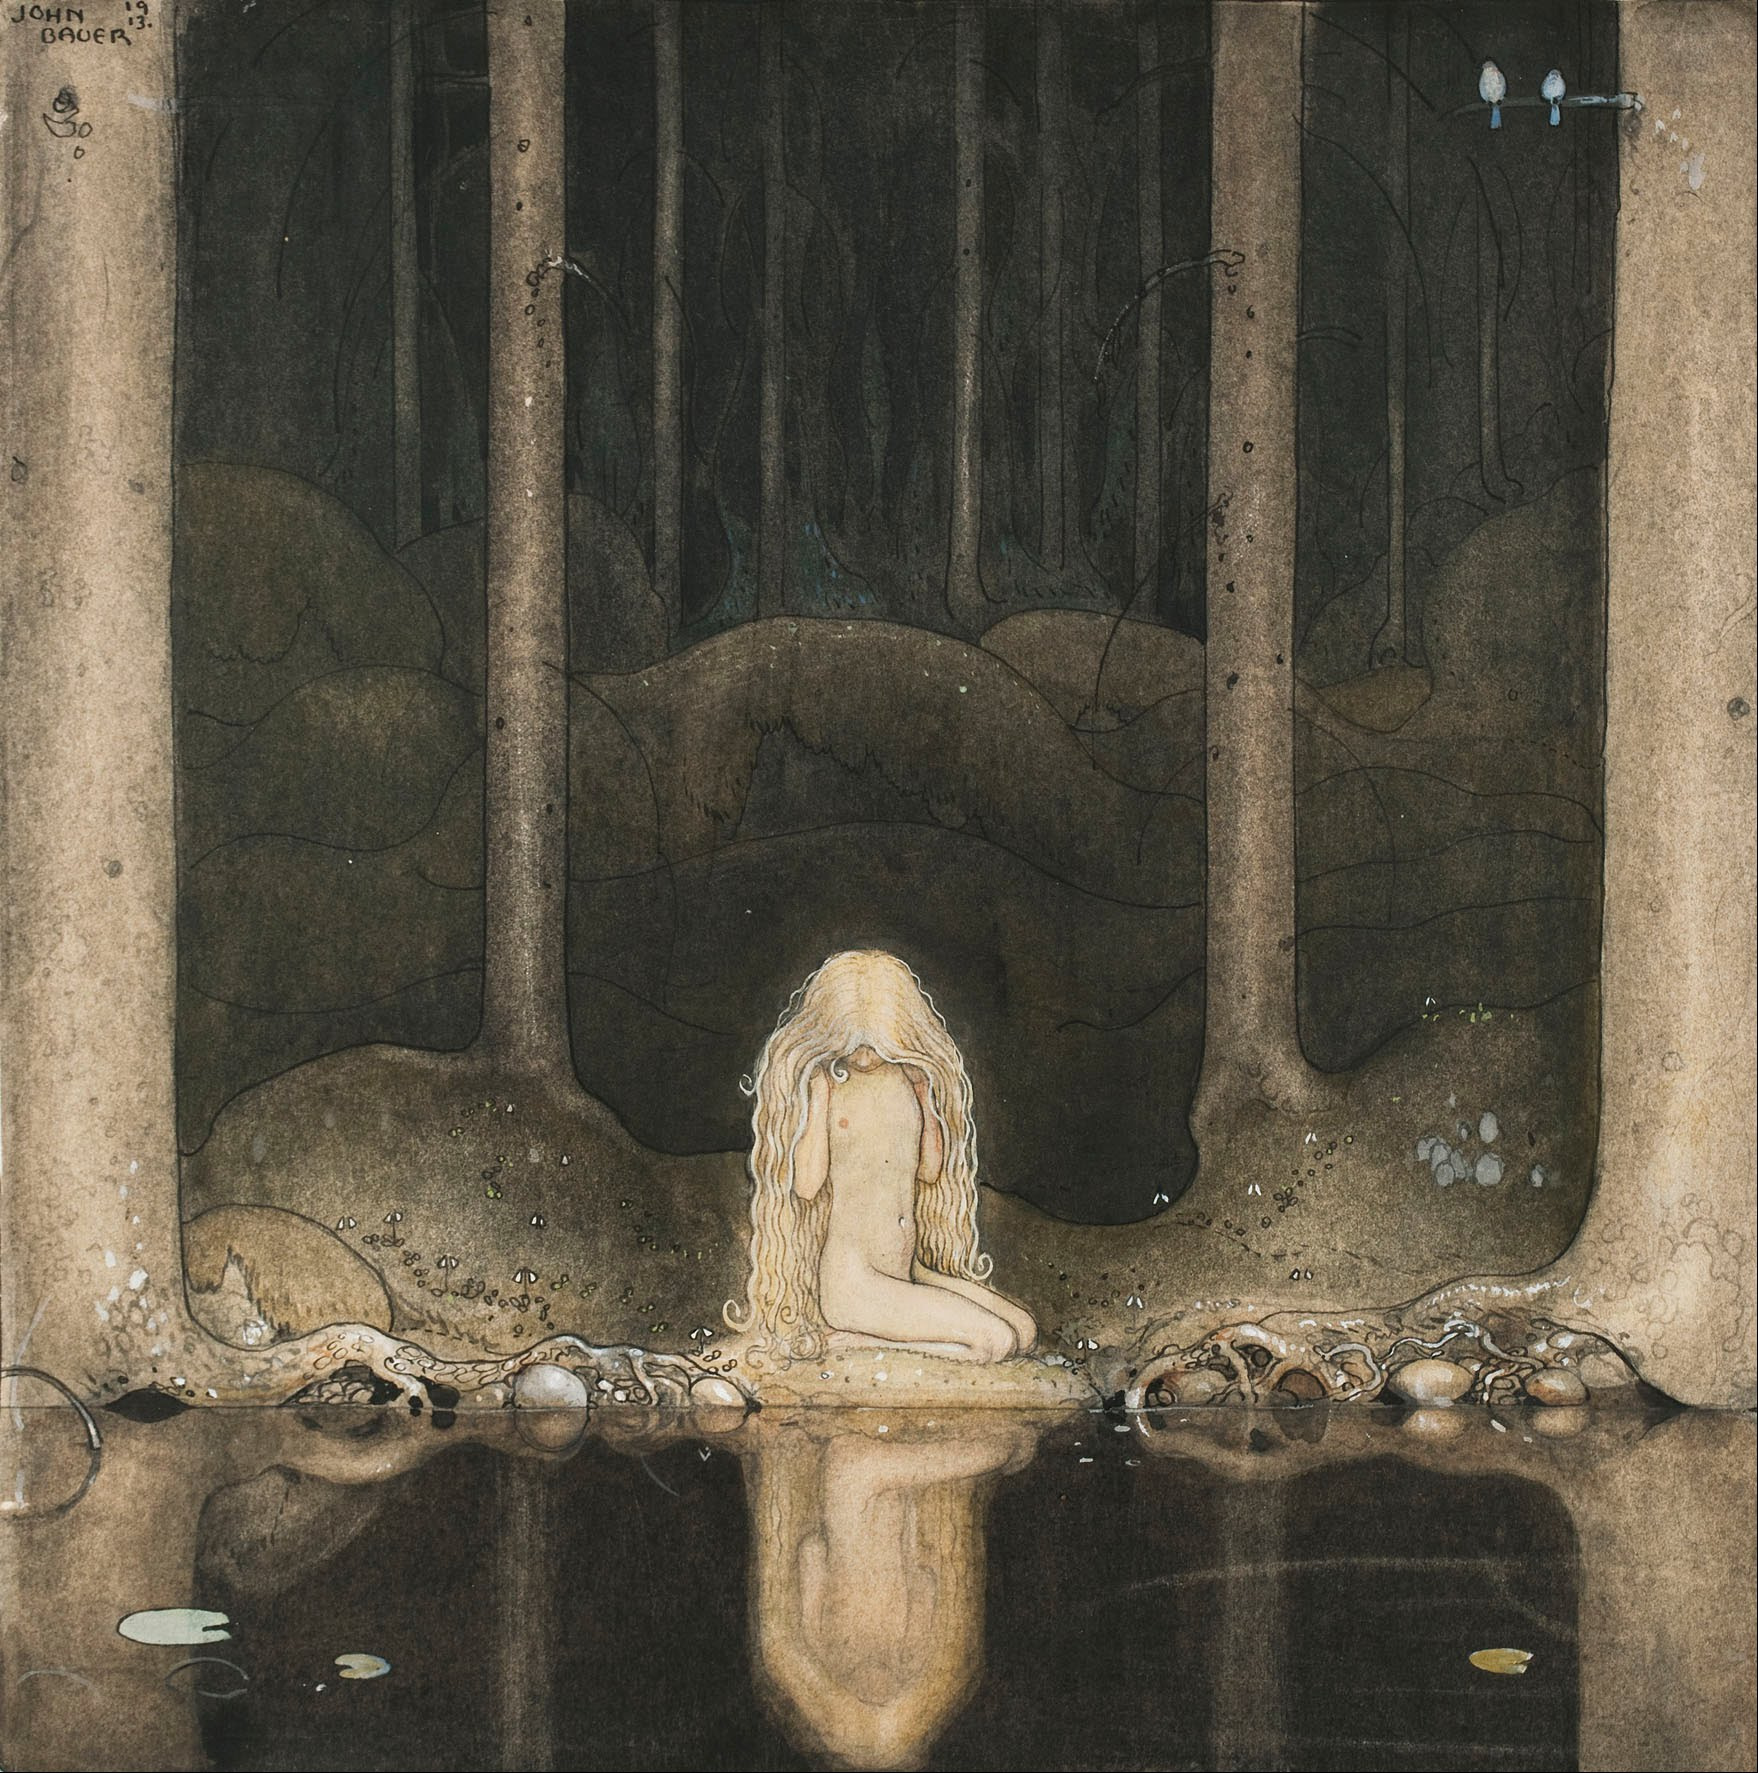 John_Bauer_-_Princess_Tuvstarr_gazing_do